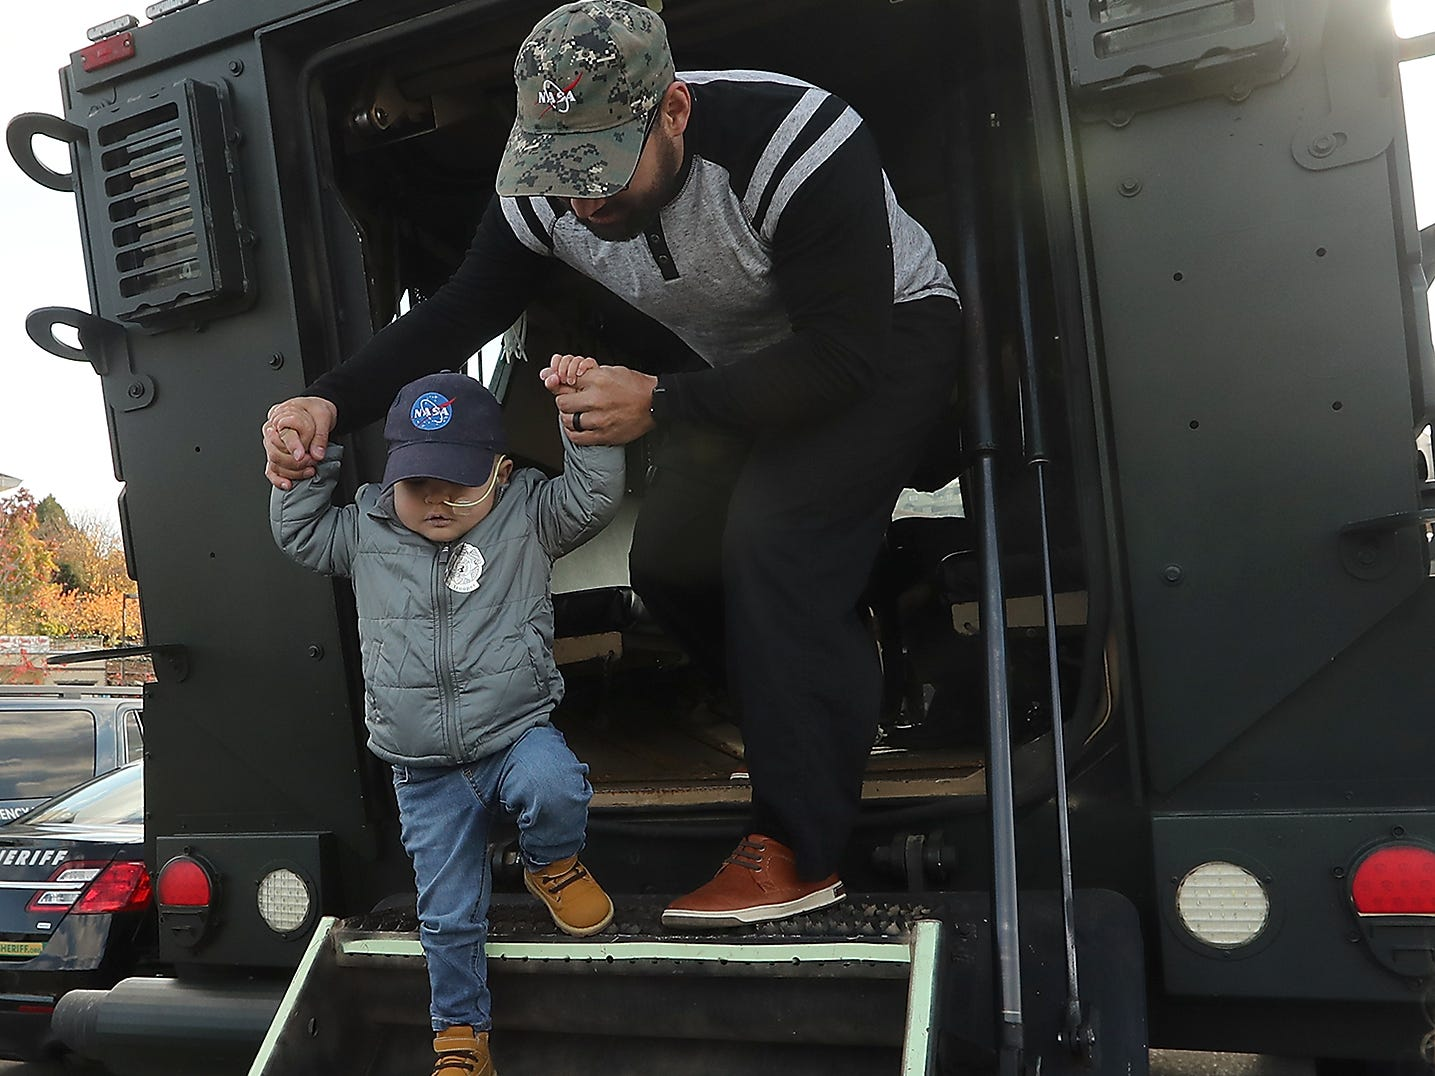 City of Port Orchard hosts Jedi's Special Day in honor of 3-year-old Jedi Minters at the Port of Bremerton boat launch across from City Hall on Wednesday, November 7, 2018.